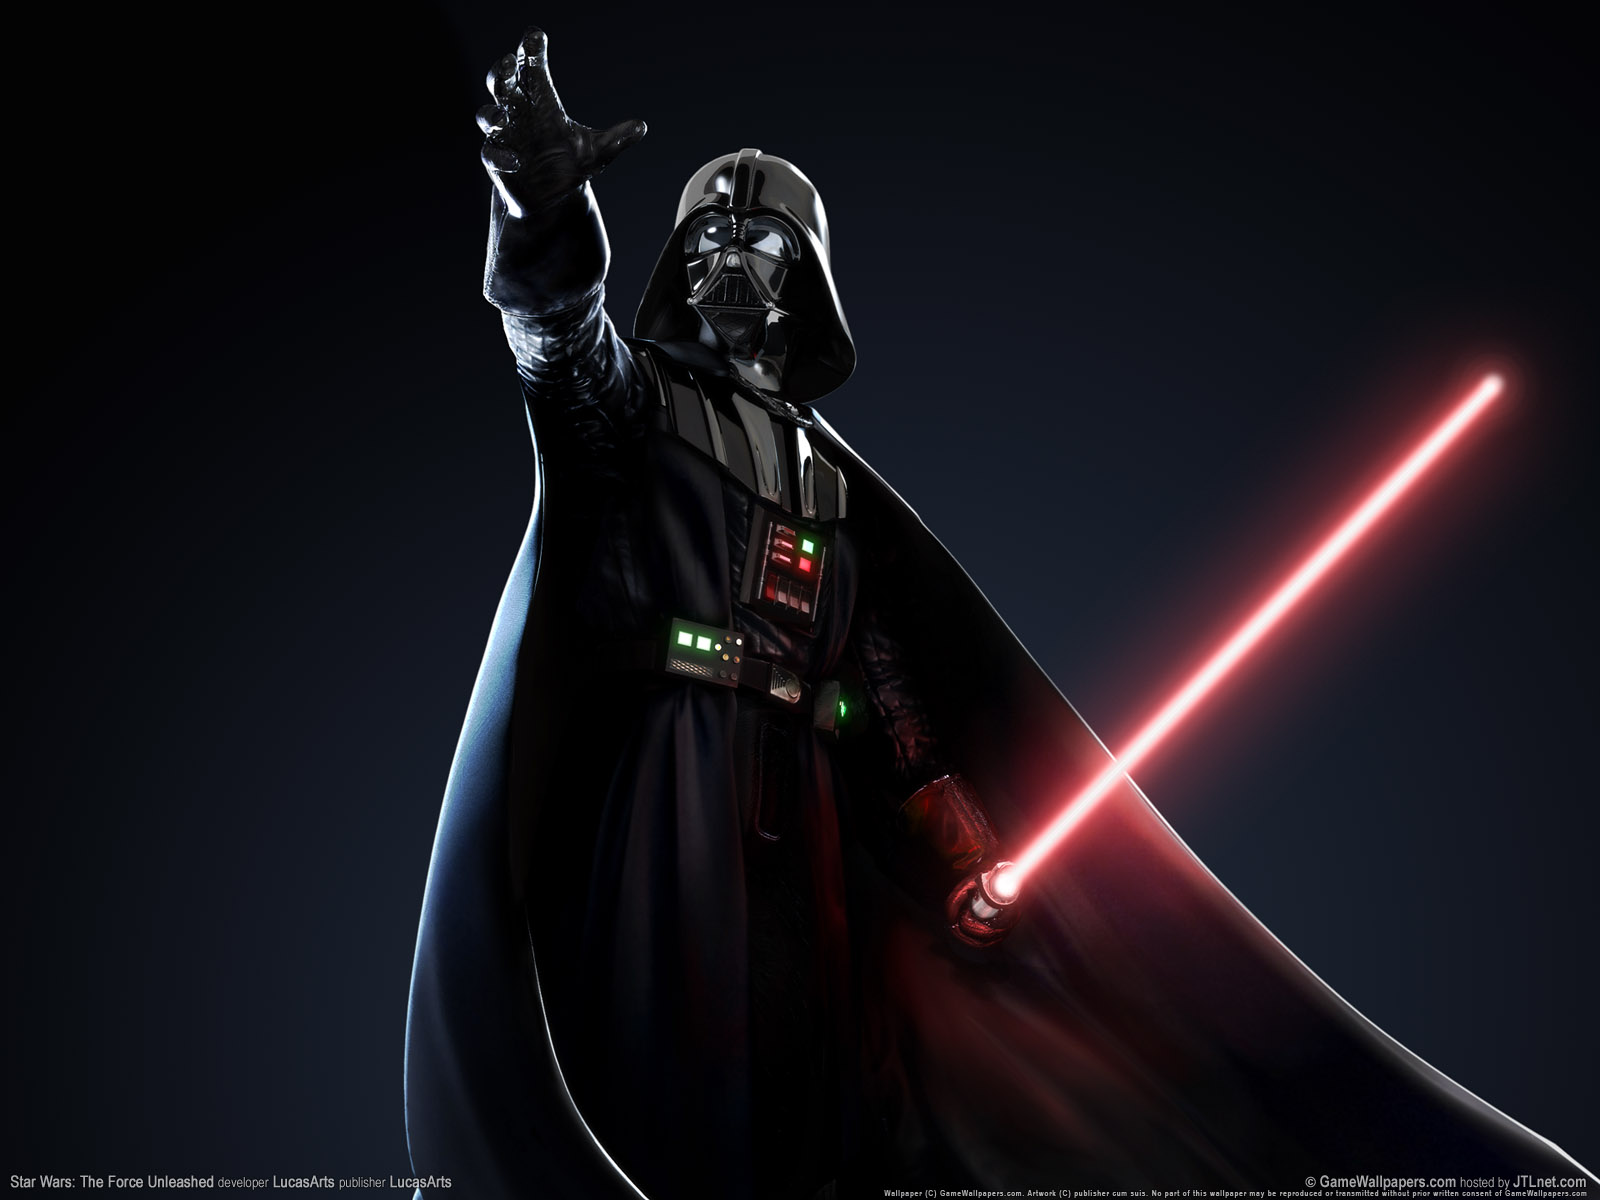 http://3.bp.blogspot.com/_9LRtdHjt9aQ/TNbQ8gbIHdI/AAAAAAAAAFo/ah2x70JiIcs/s1600/star_wars_the_force_unleashed__2-normal.jpg